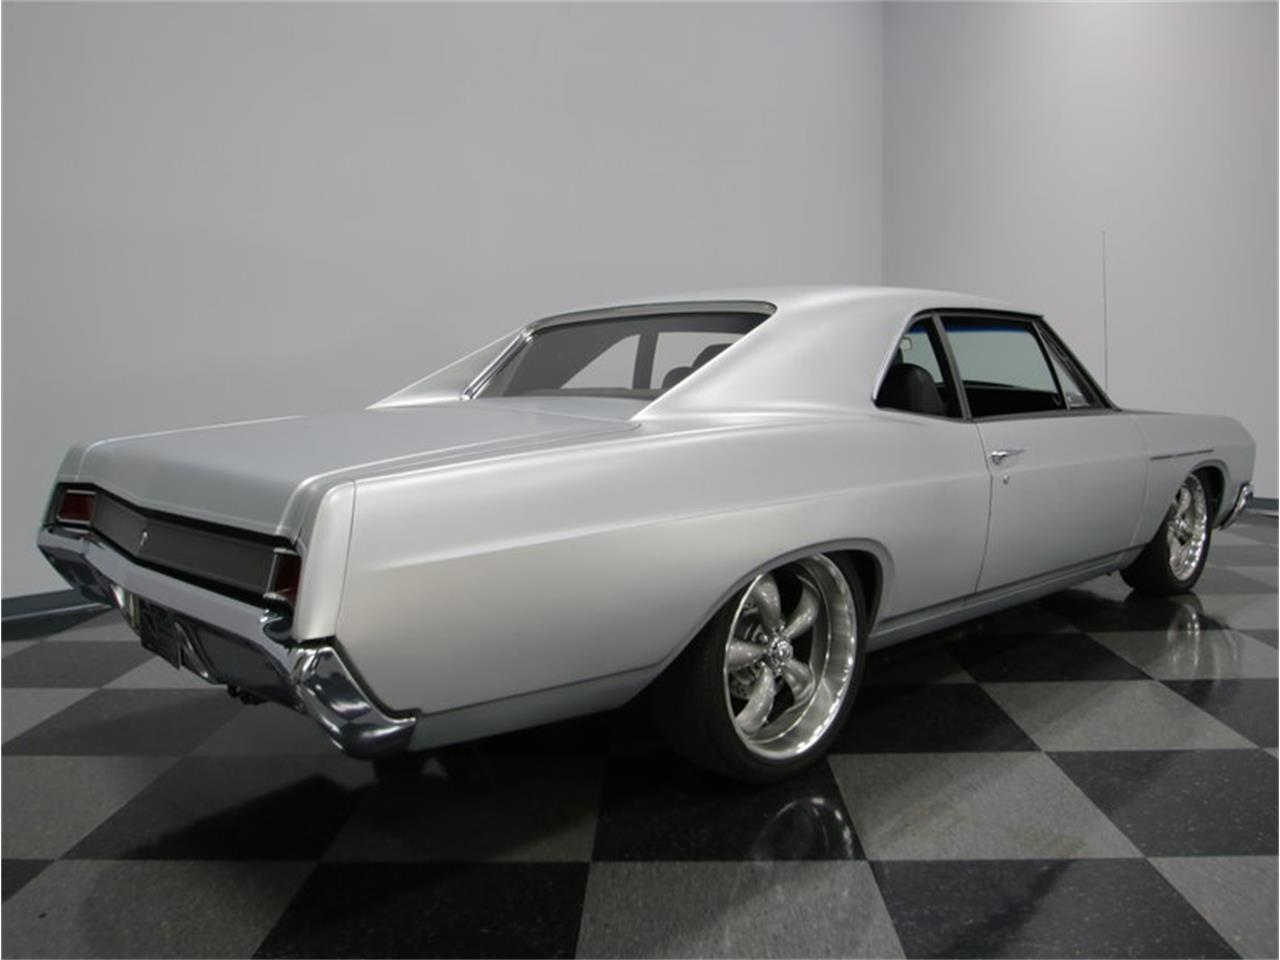 Large Picture of Classic 1966 Buick Skylark Pro Touring located in Lithia Springs Georgia - $36,995.00 Offered by Streetside Classics - Atlanta - L93D